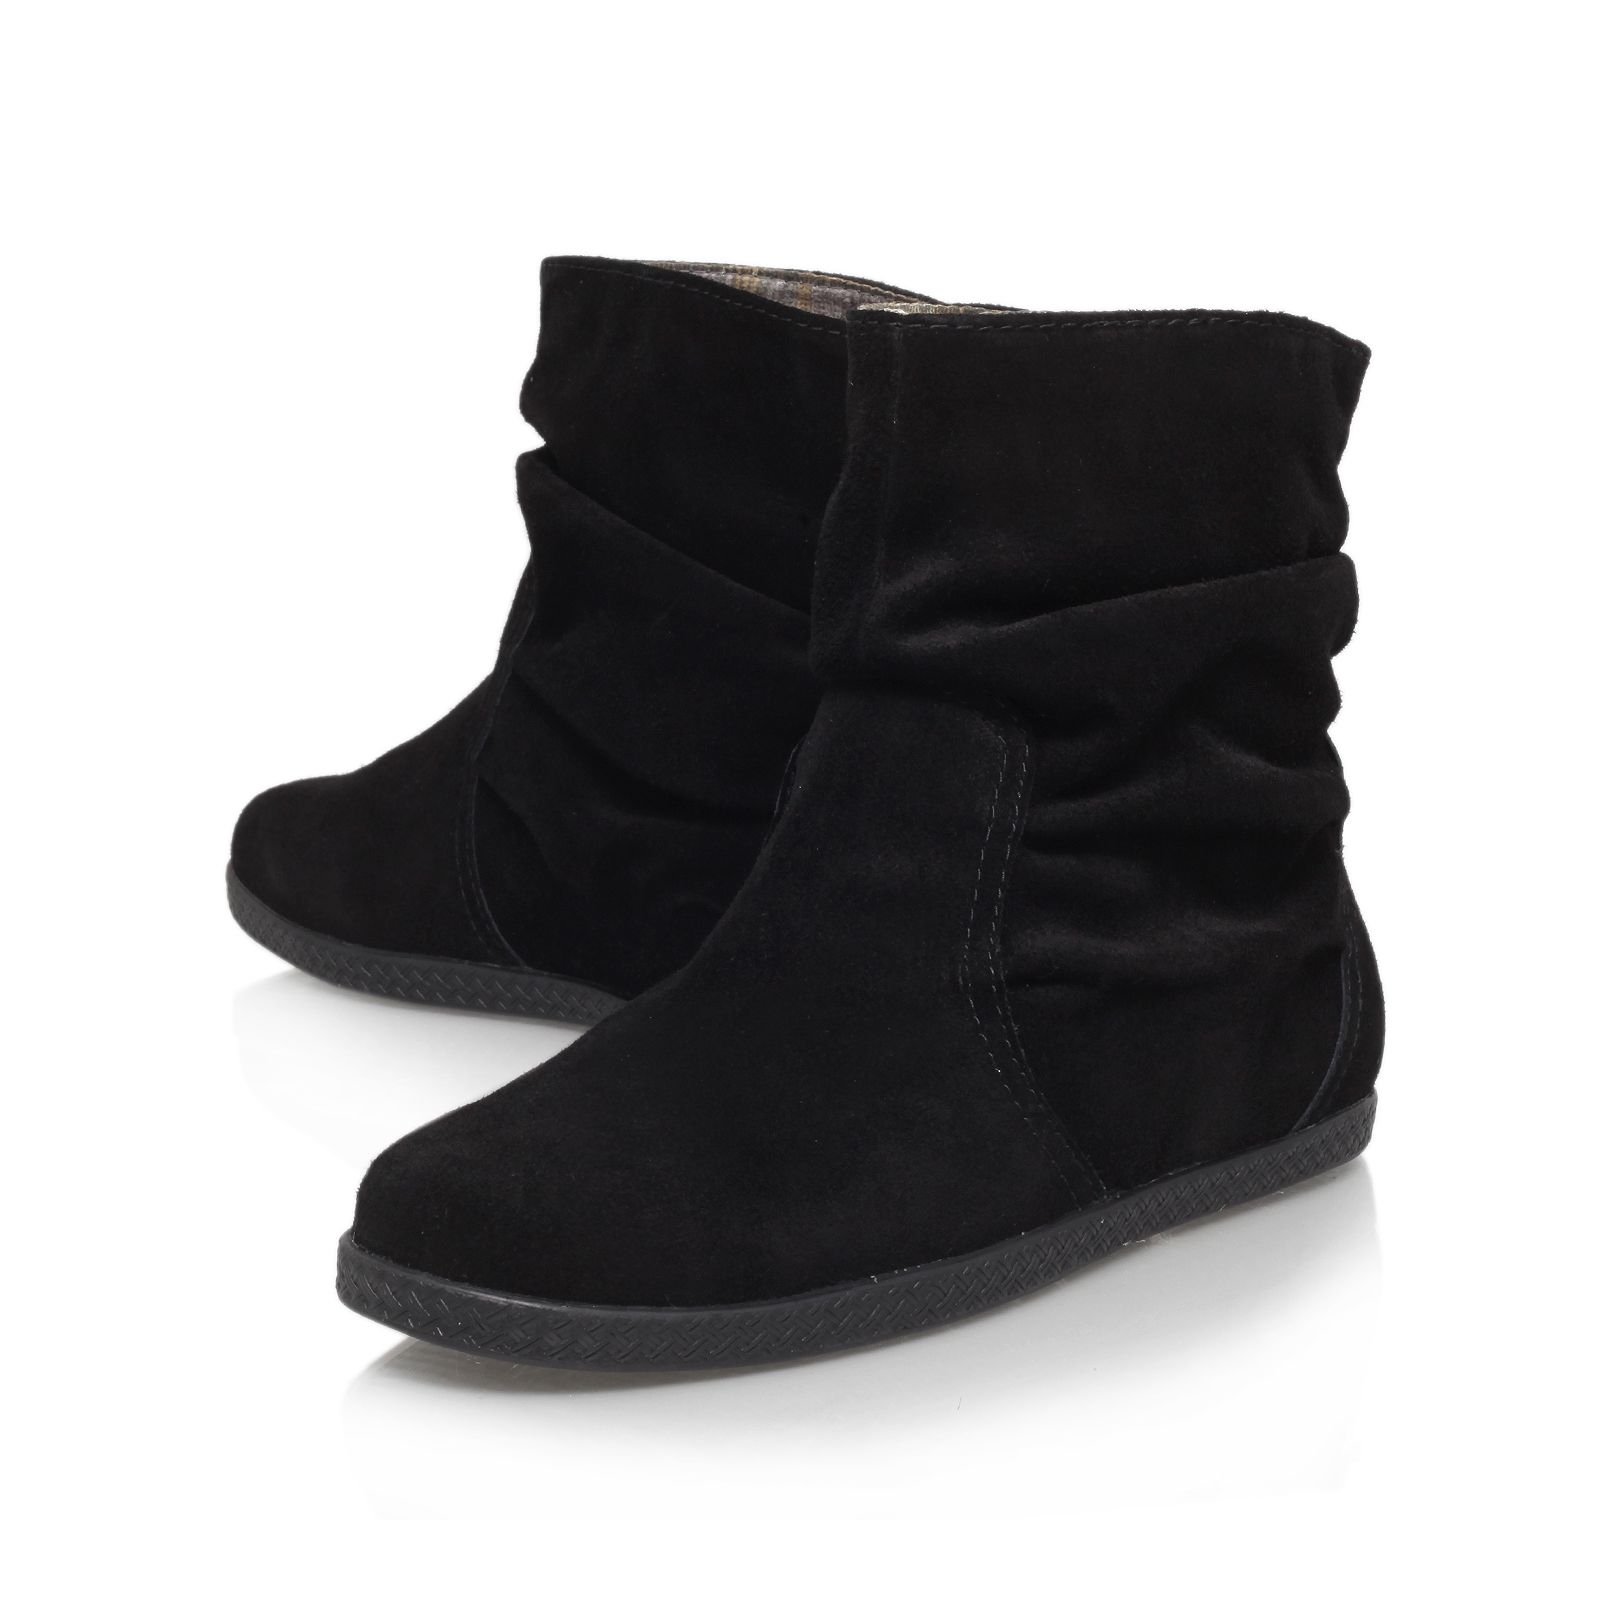 Nine west Rockinout Flat Ankle Boots in Black | Lyst